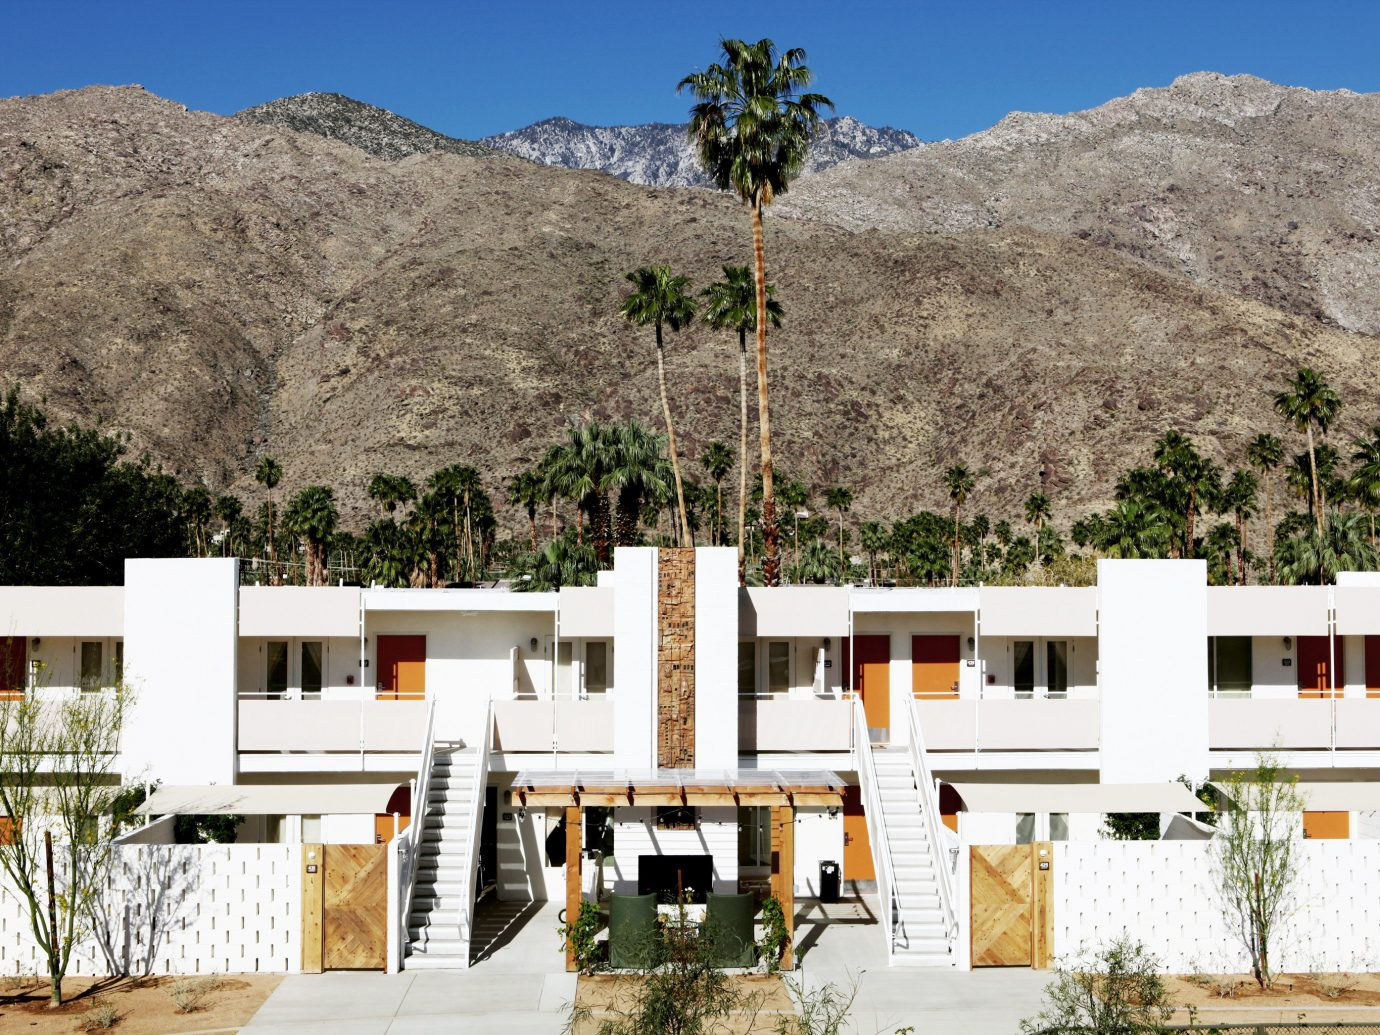 Exterior view of Saguaro Palm Springs